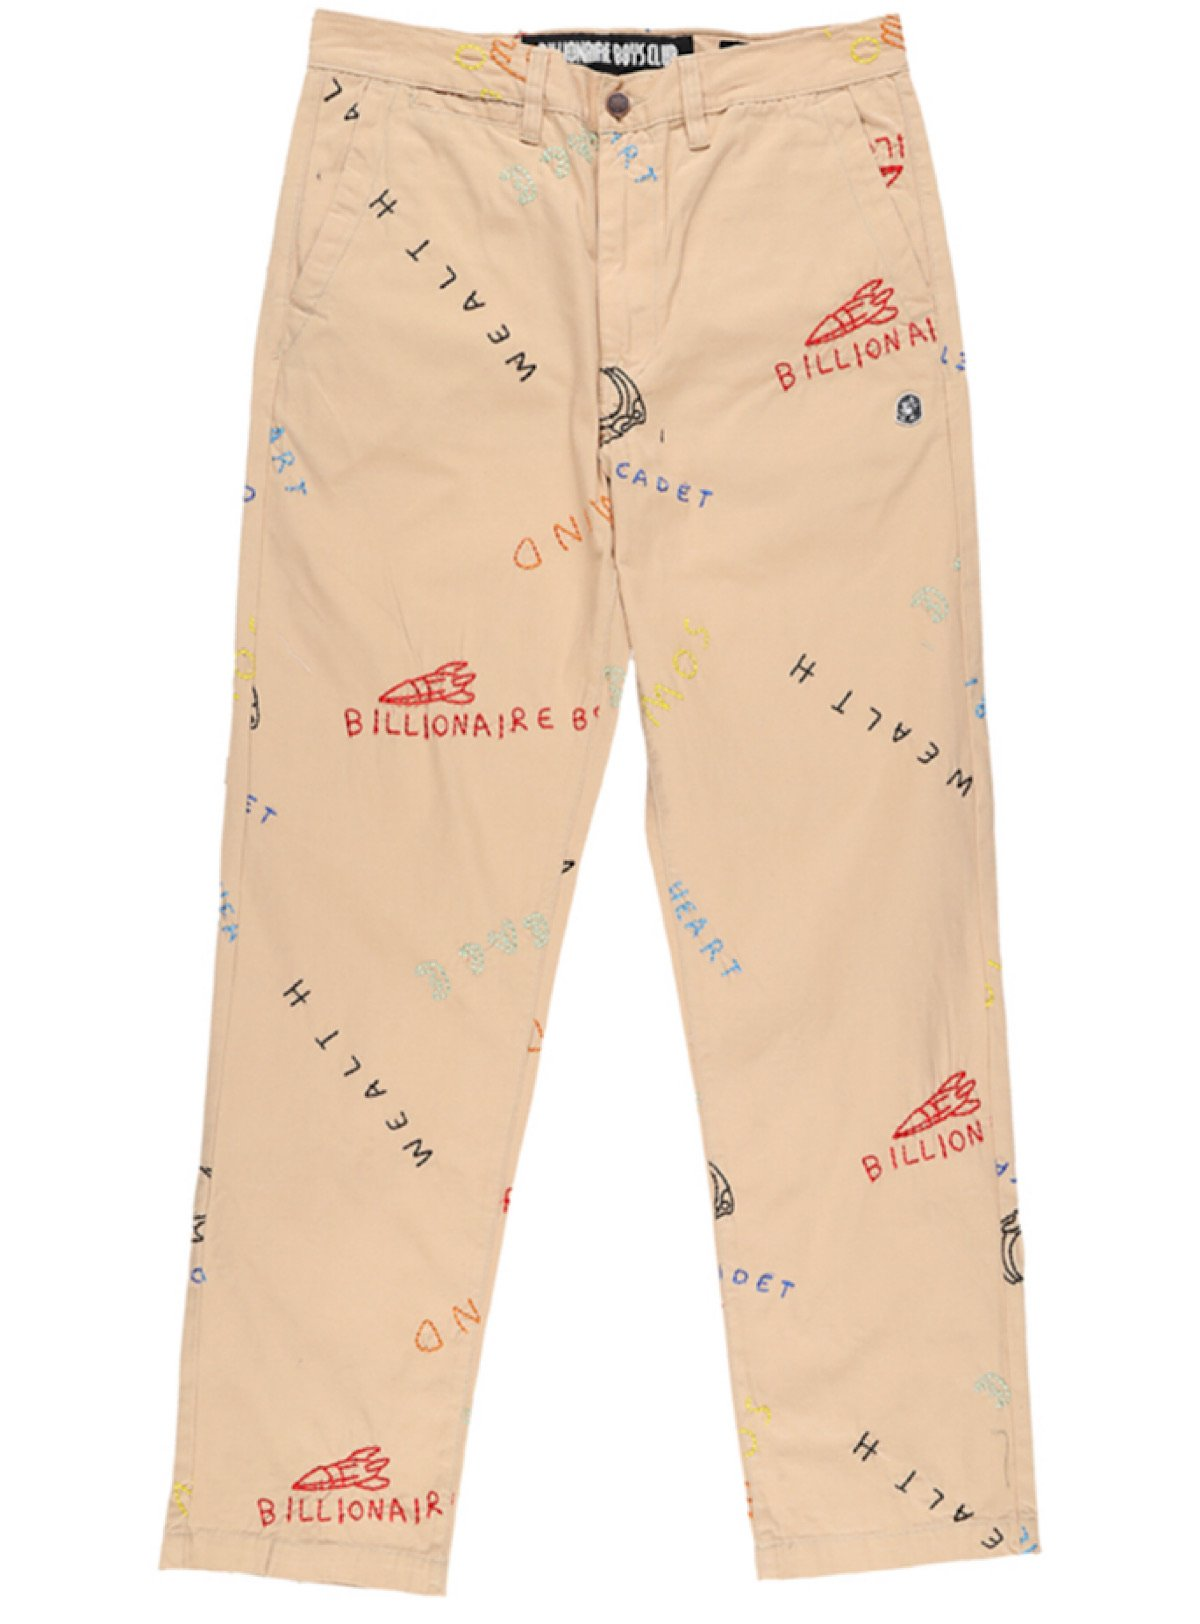 Billionaire Boys Club Pants - Thought Bubble - Croissant Tan